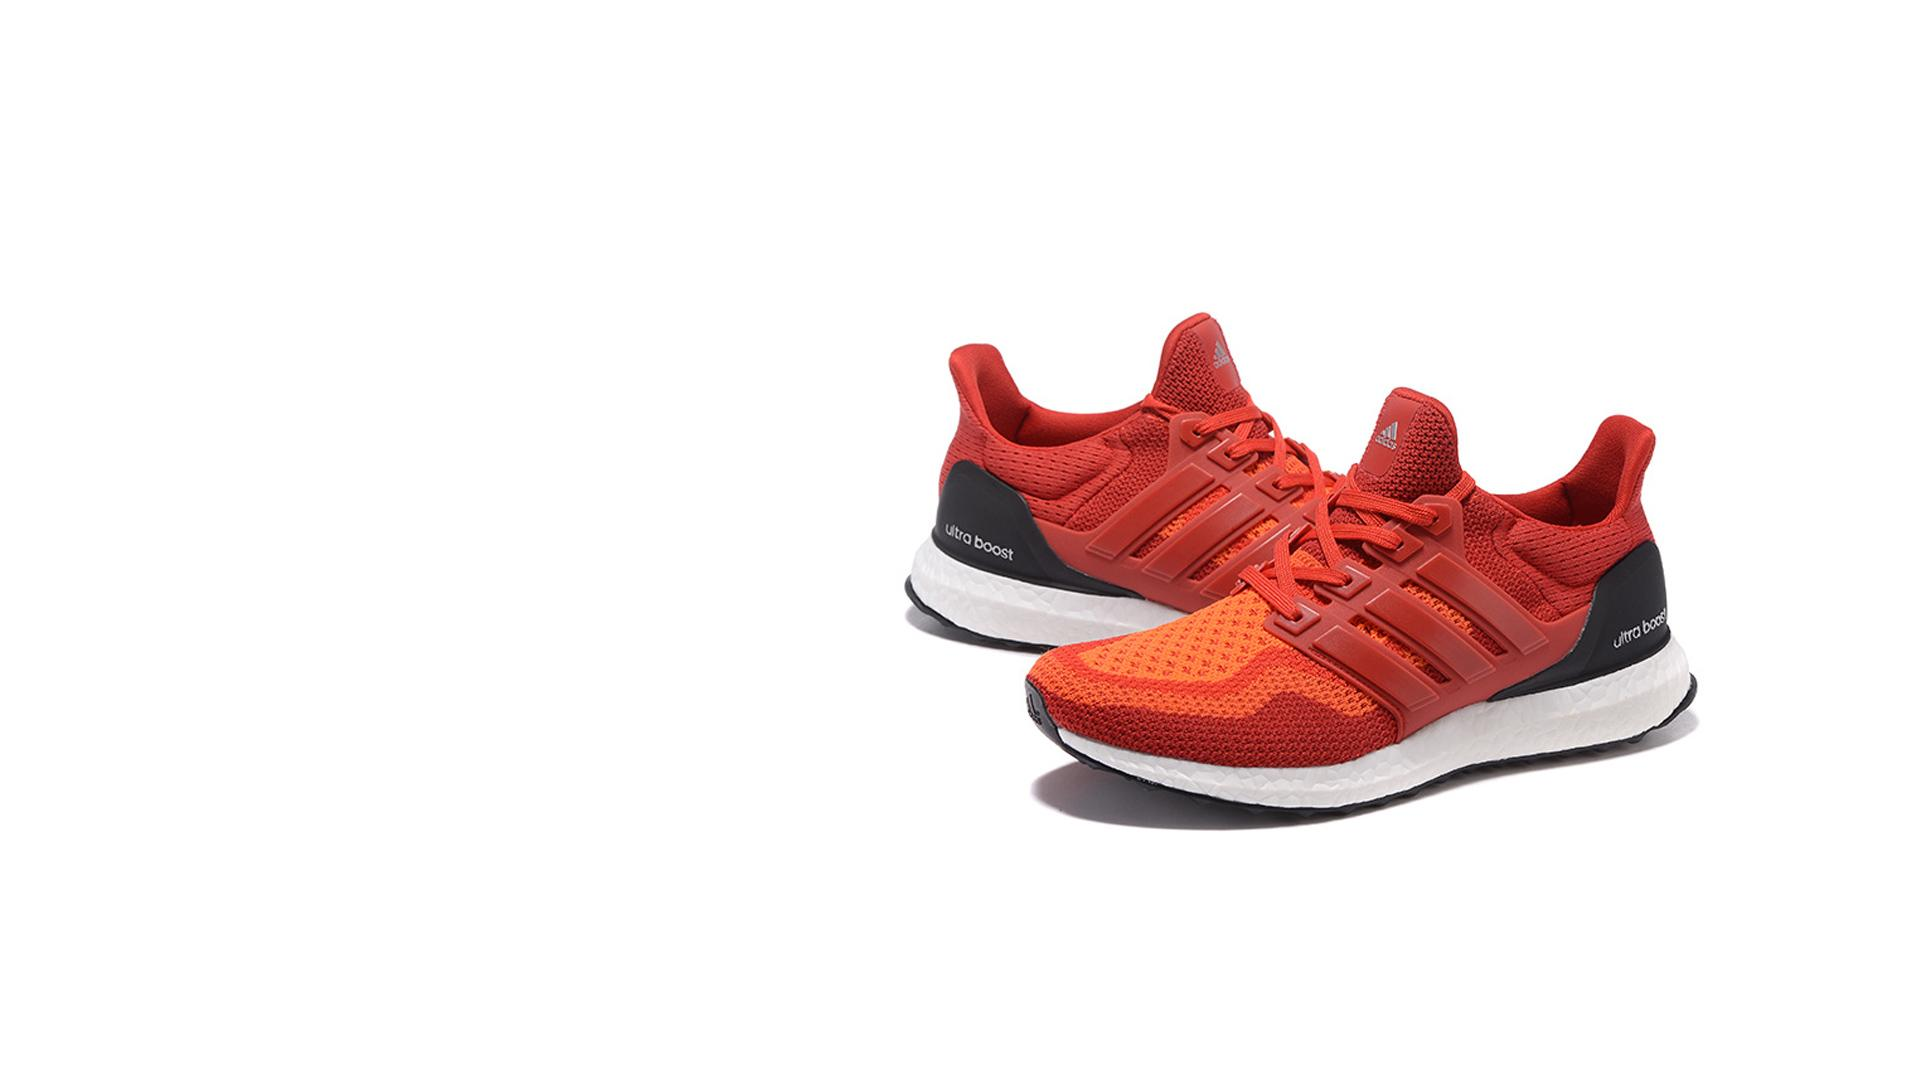 Ultraboost Running Shoes - The Age Of Luna - Body & Soul